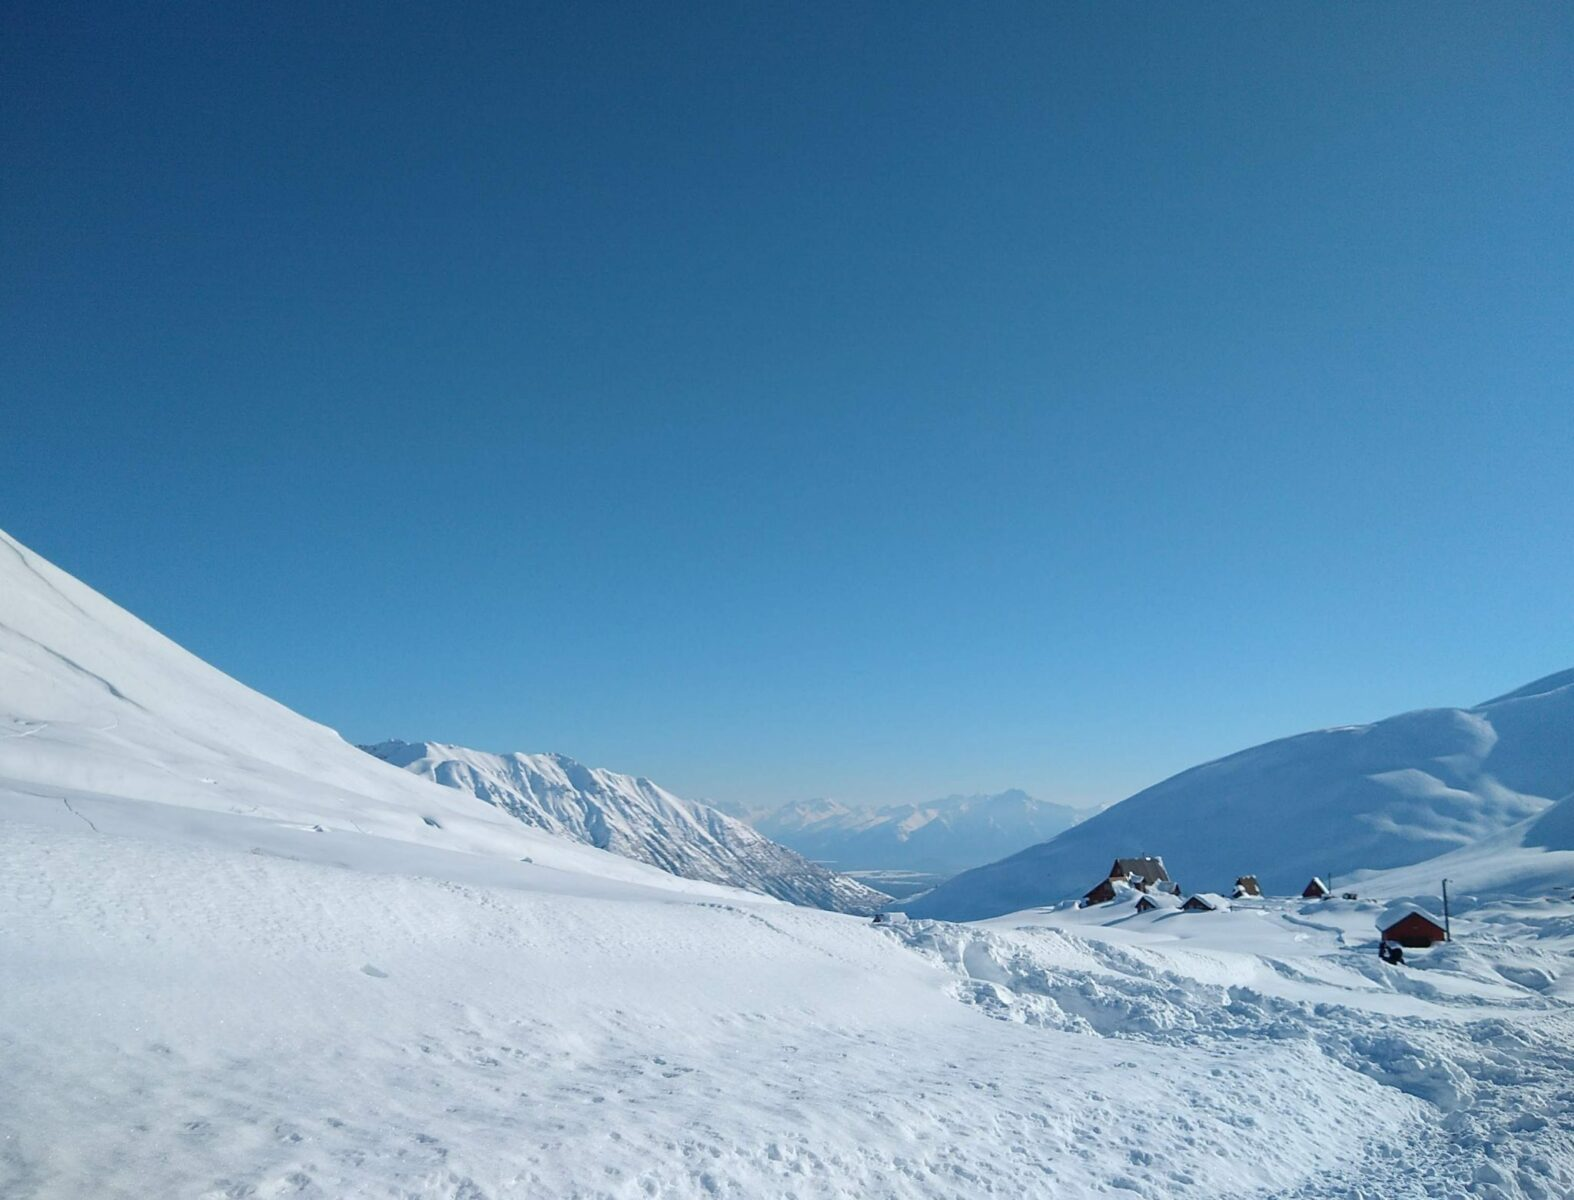 A field of deep snow in a valley with a few cabins. In the distance are more mountains and even more mountains behind that on a blue sky day